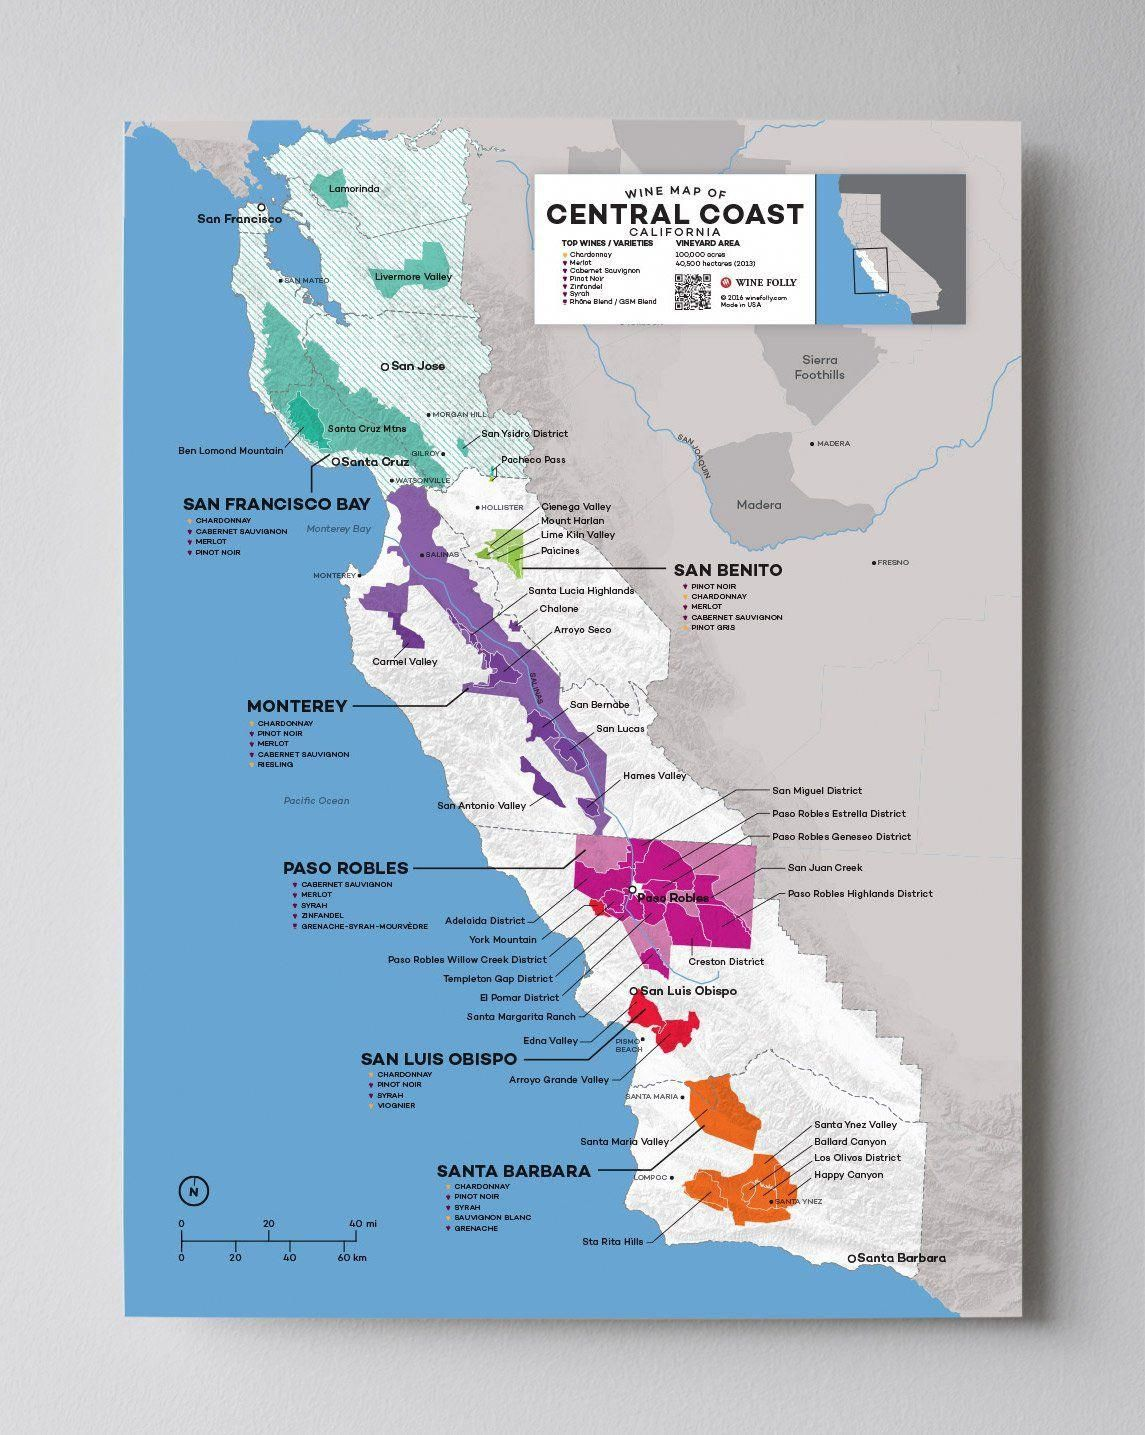 Industry California Map.Usa California Central Coast Wine Map Winegrapes Wine Industry